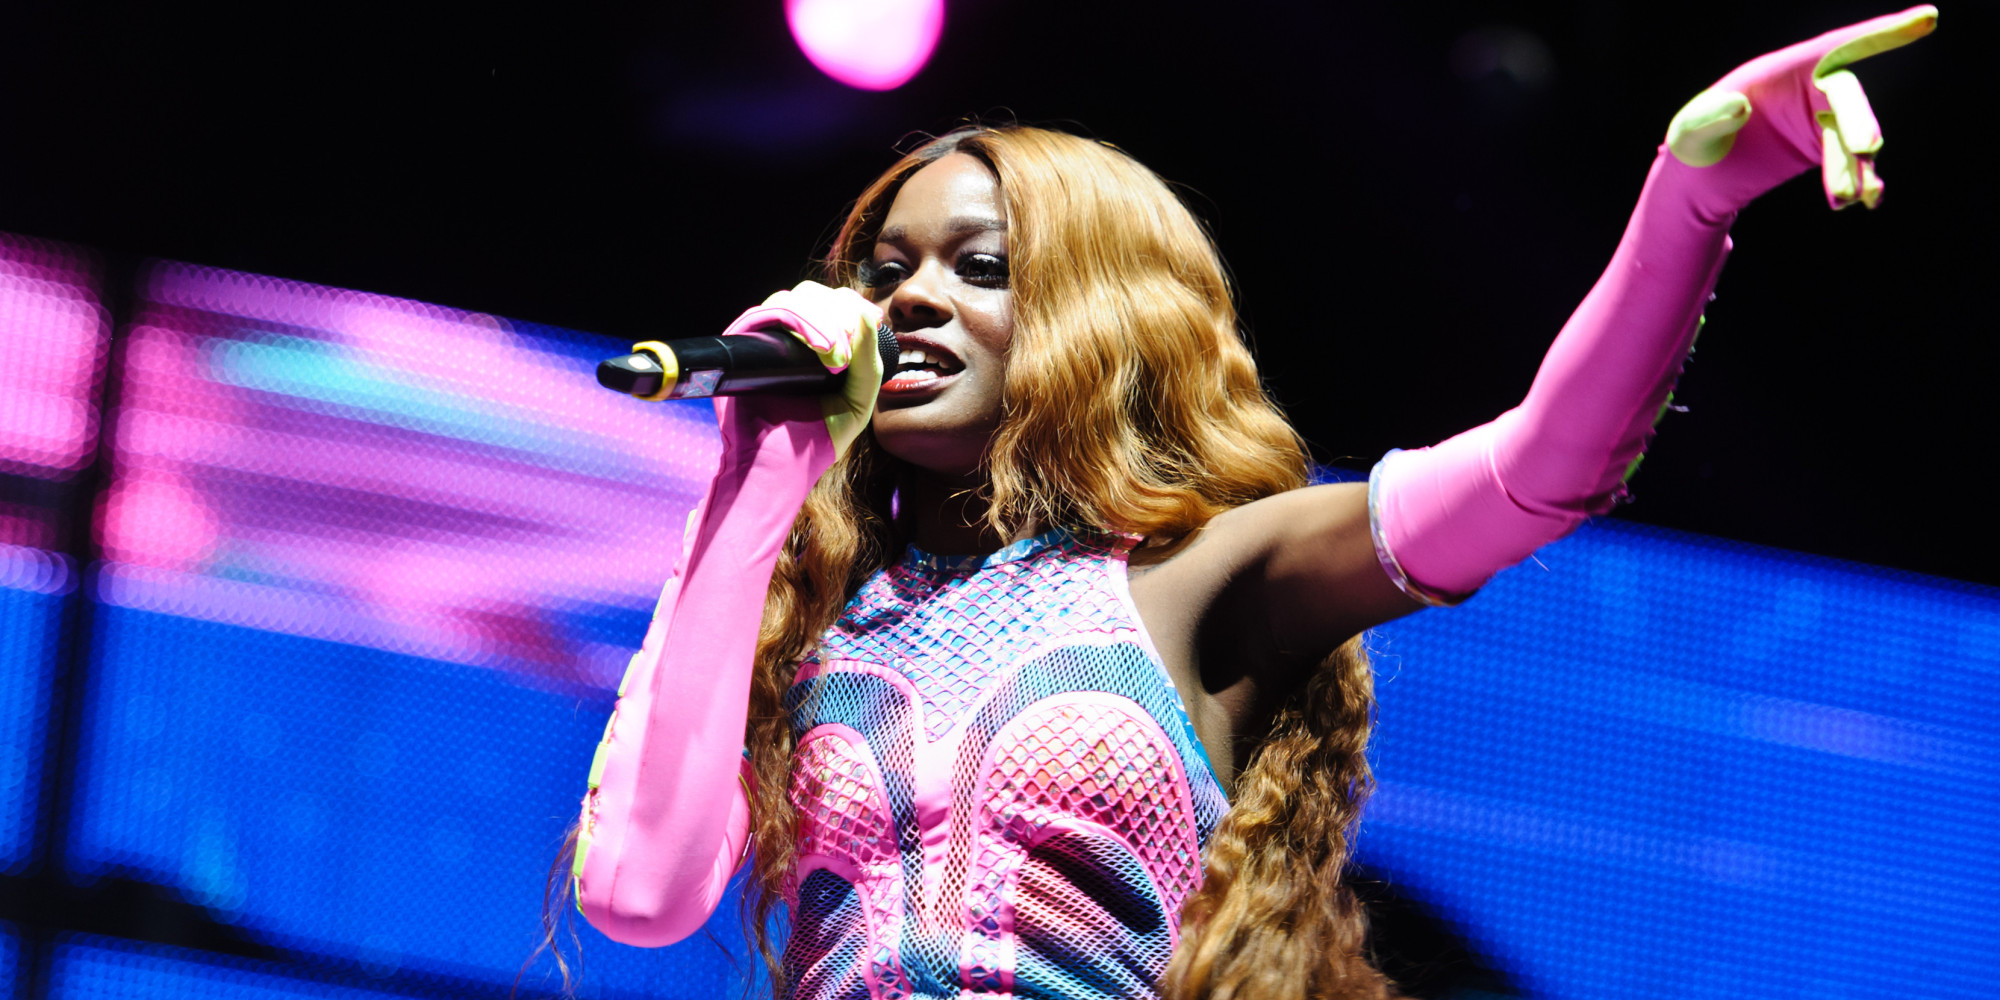 Azealia Banks – Ice Princess (Lyrics)